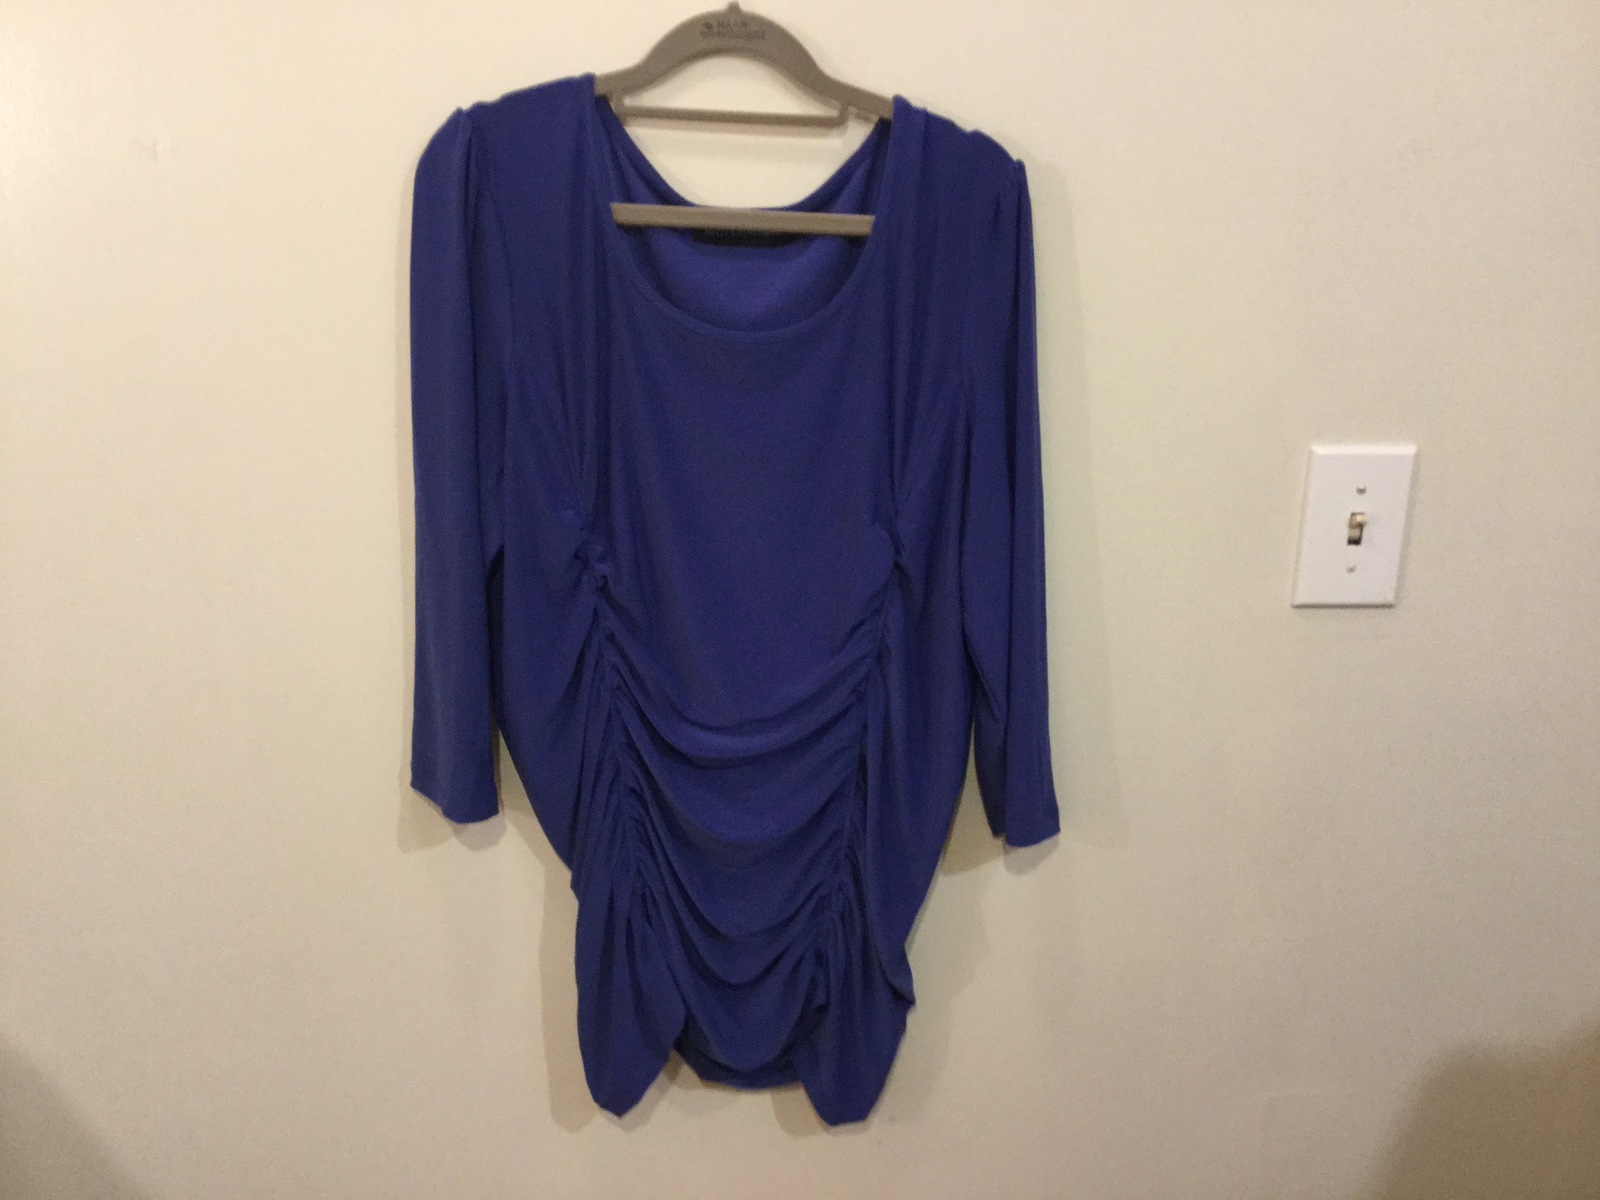 Terri Gillespie Blue Stretchy Polyester Blouse Top 3/4 Sleeve, size XL